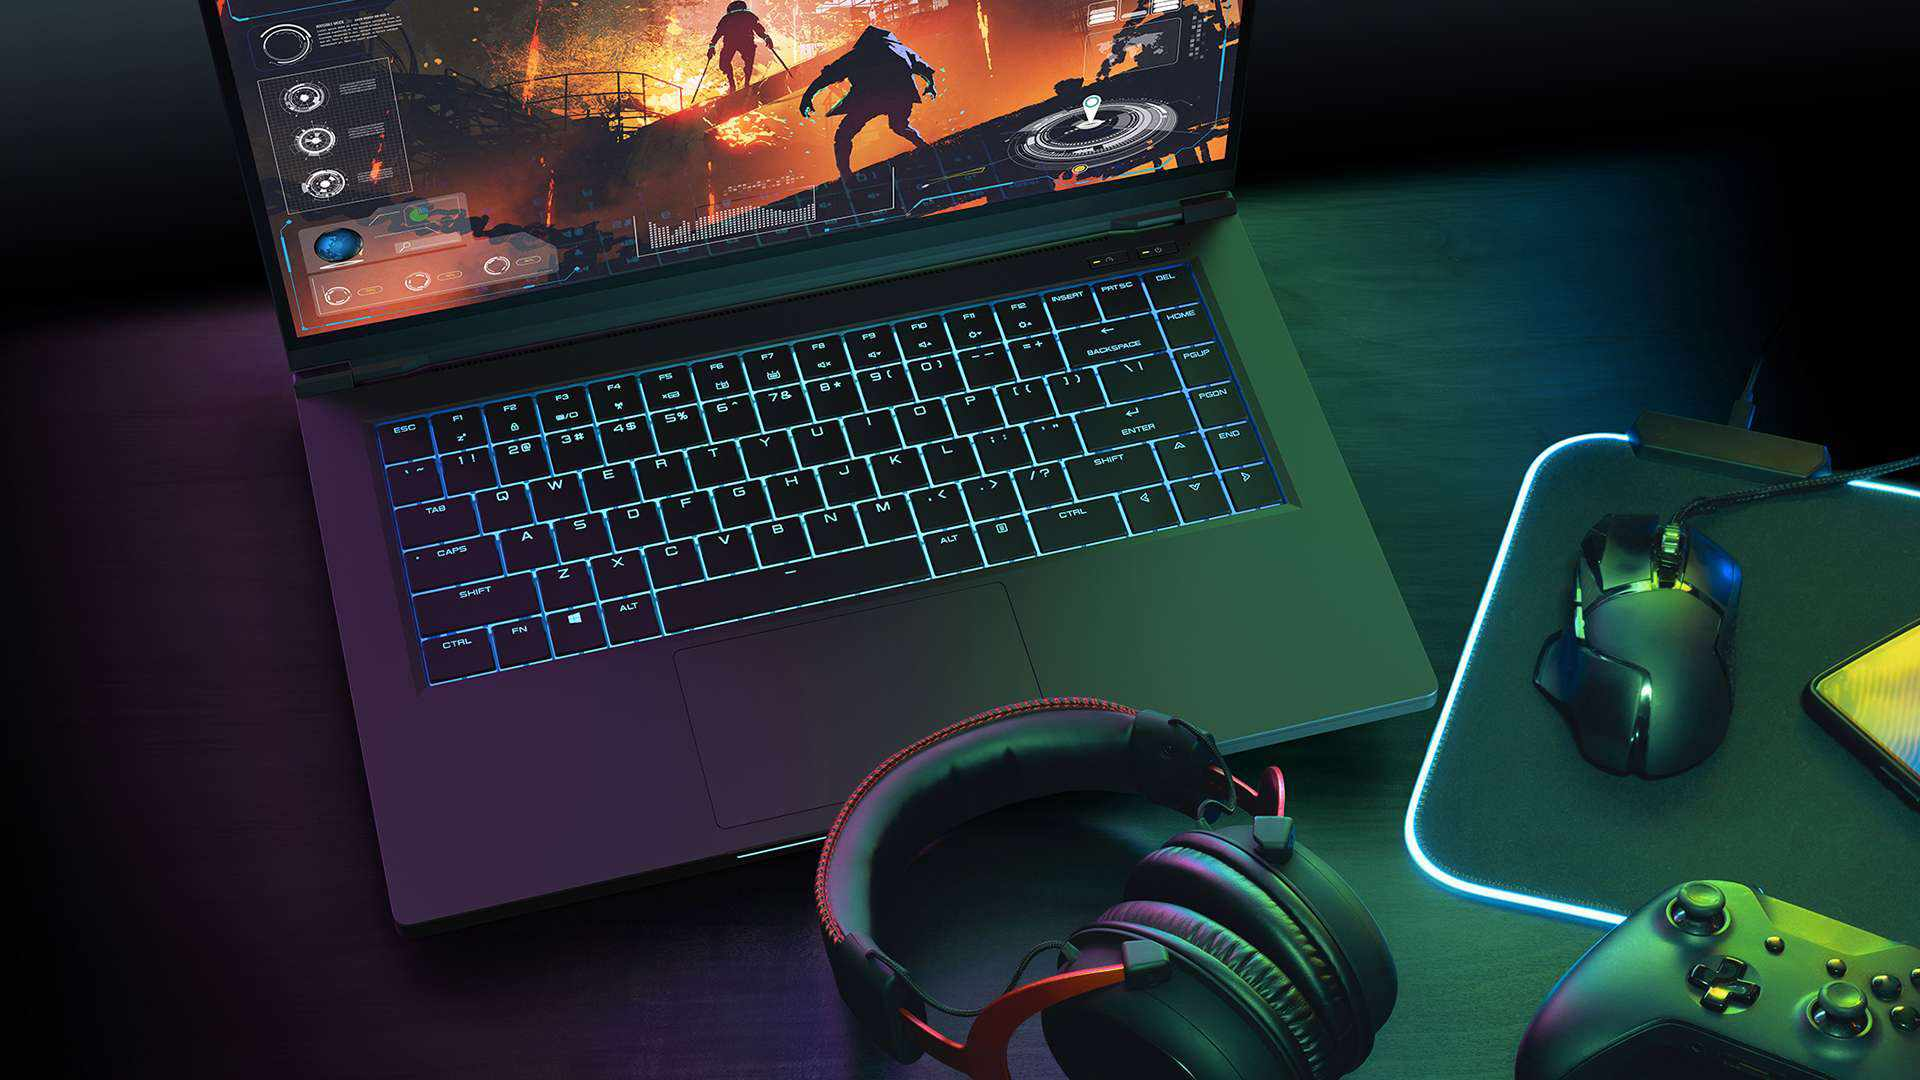 A gaming laptop on a desk with headphones, a mouse, and a game controller nearby.